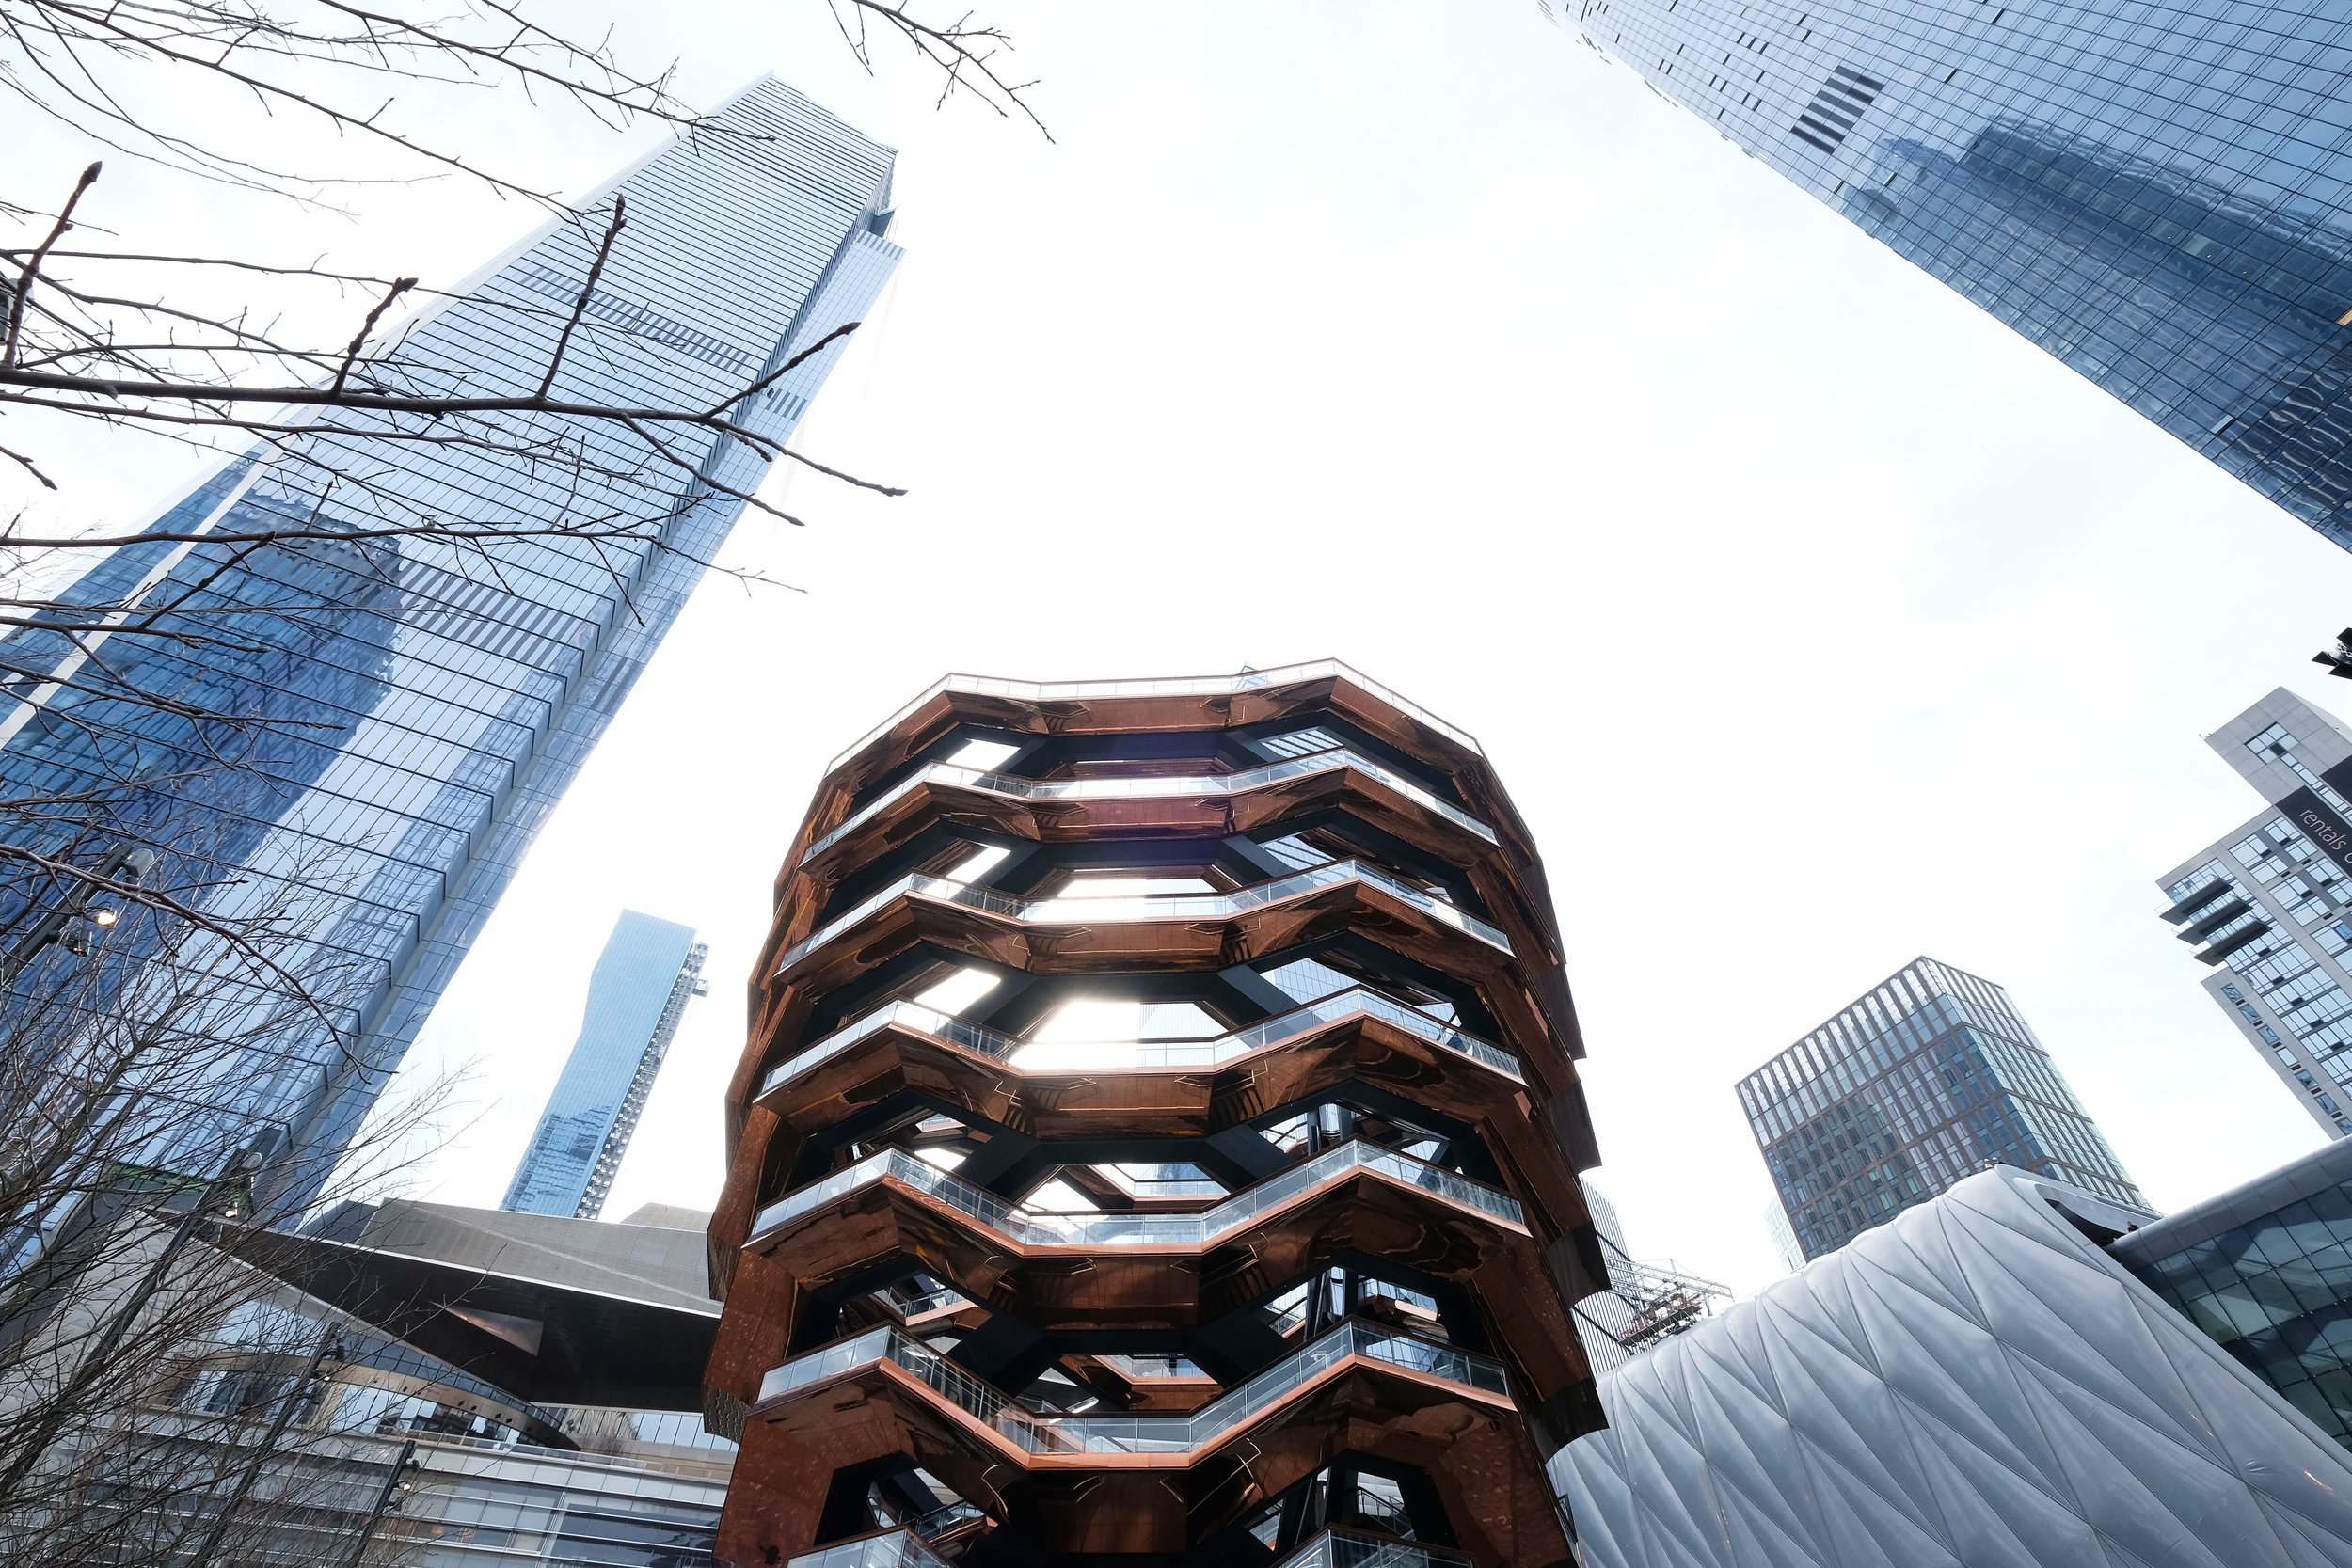 The Vessel The Hudson Yards Neighborhood Officially Opens As Related Companies And Oxford Properties Group Celebrate Historic NYC Milestone